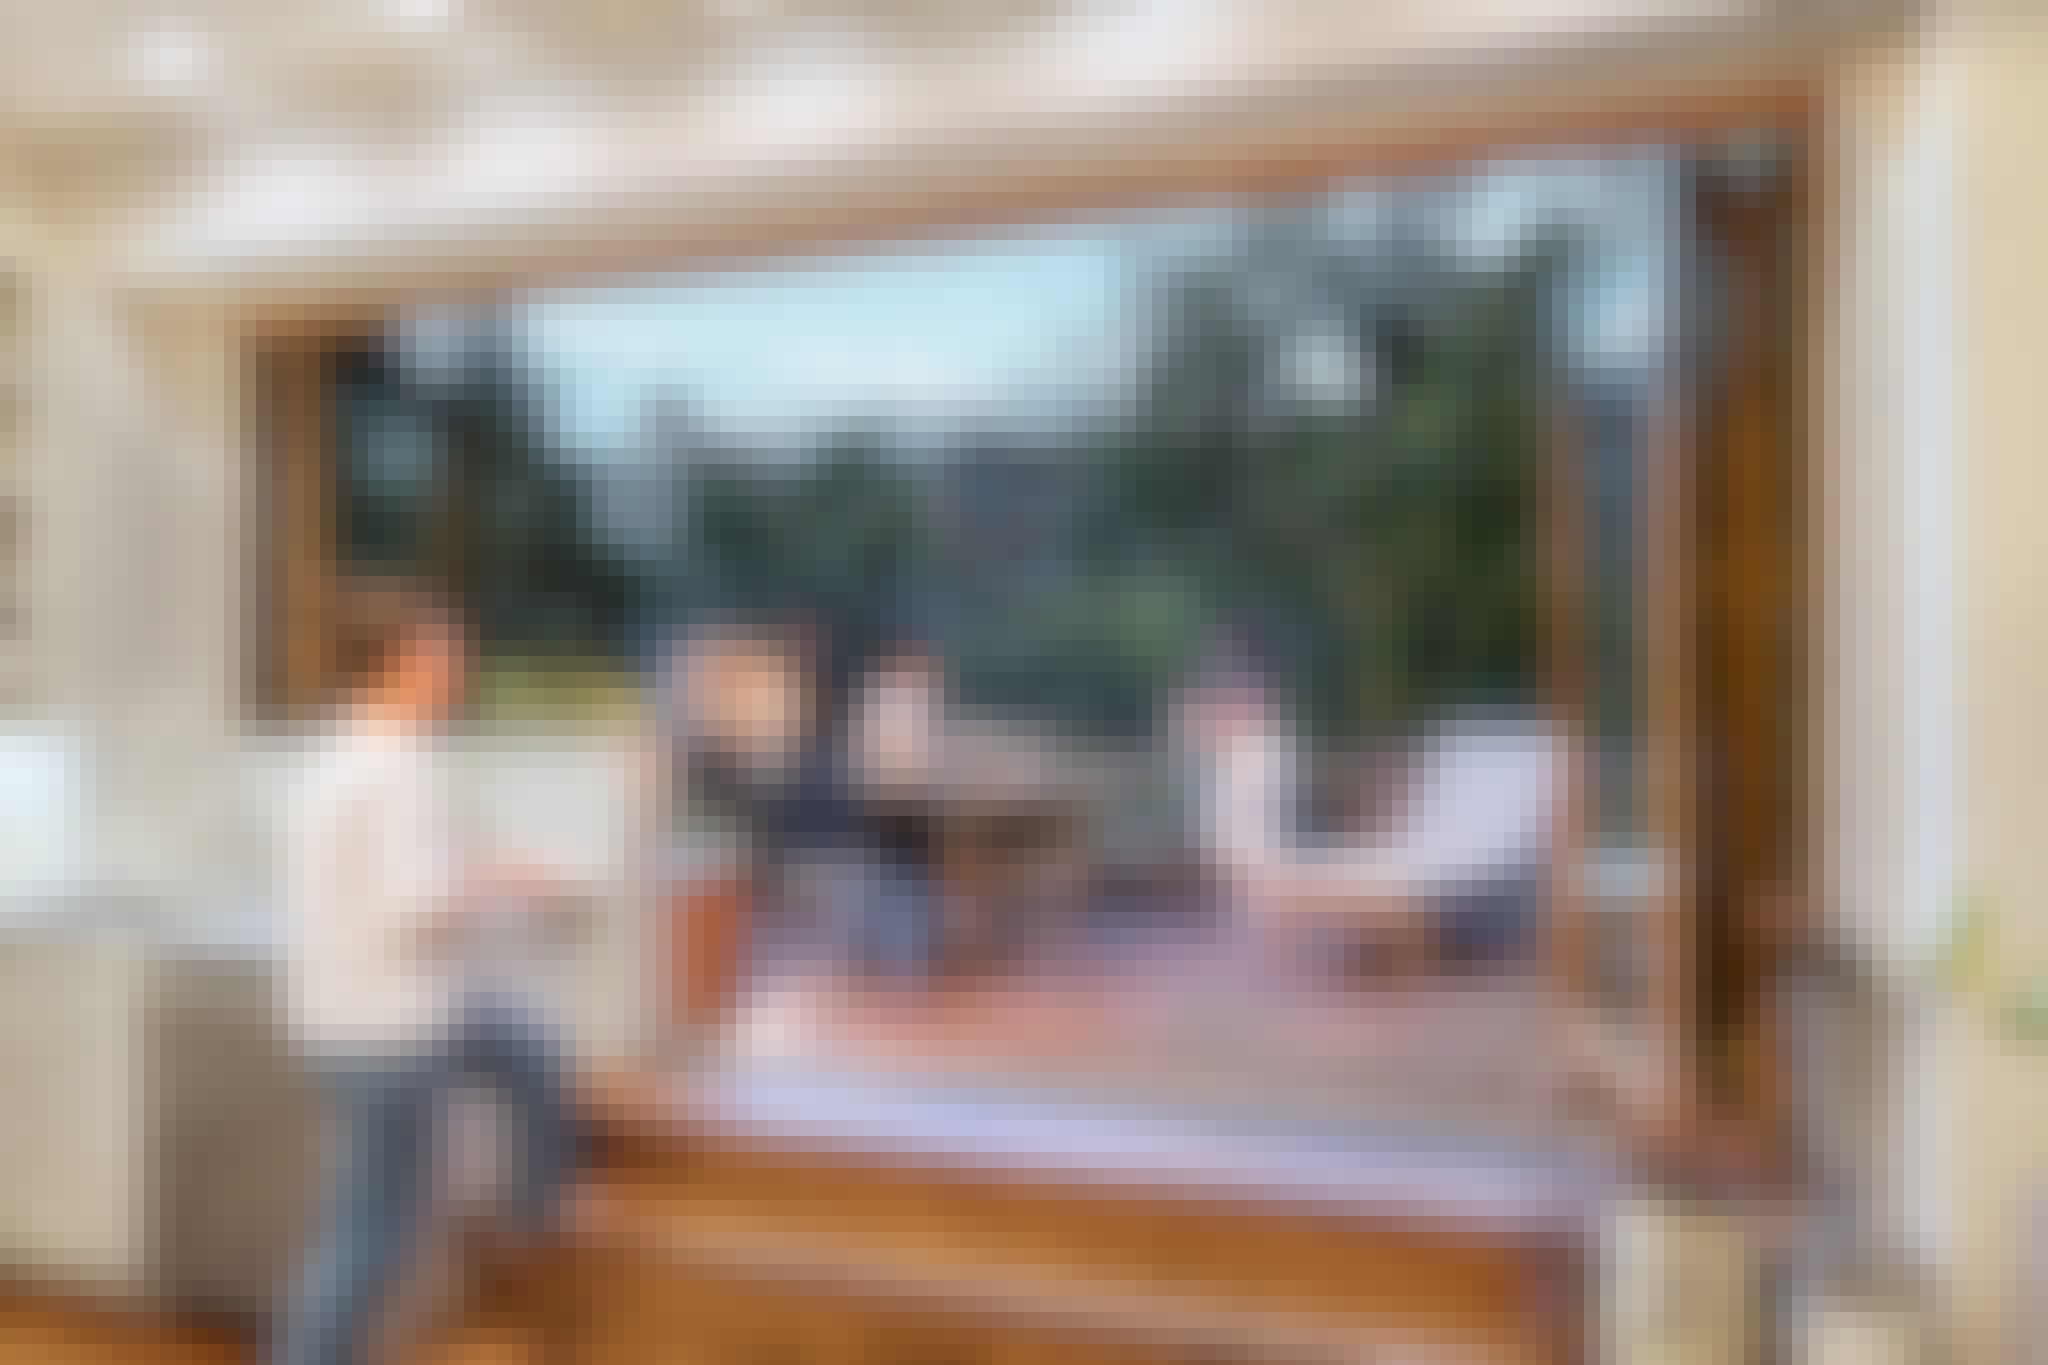 opening glass patio doors open up to a deck